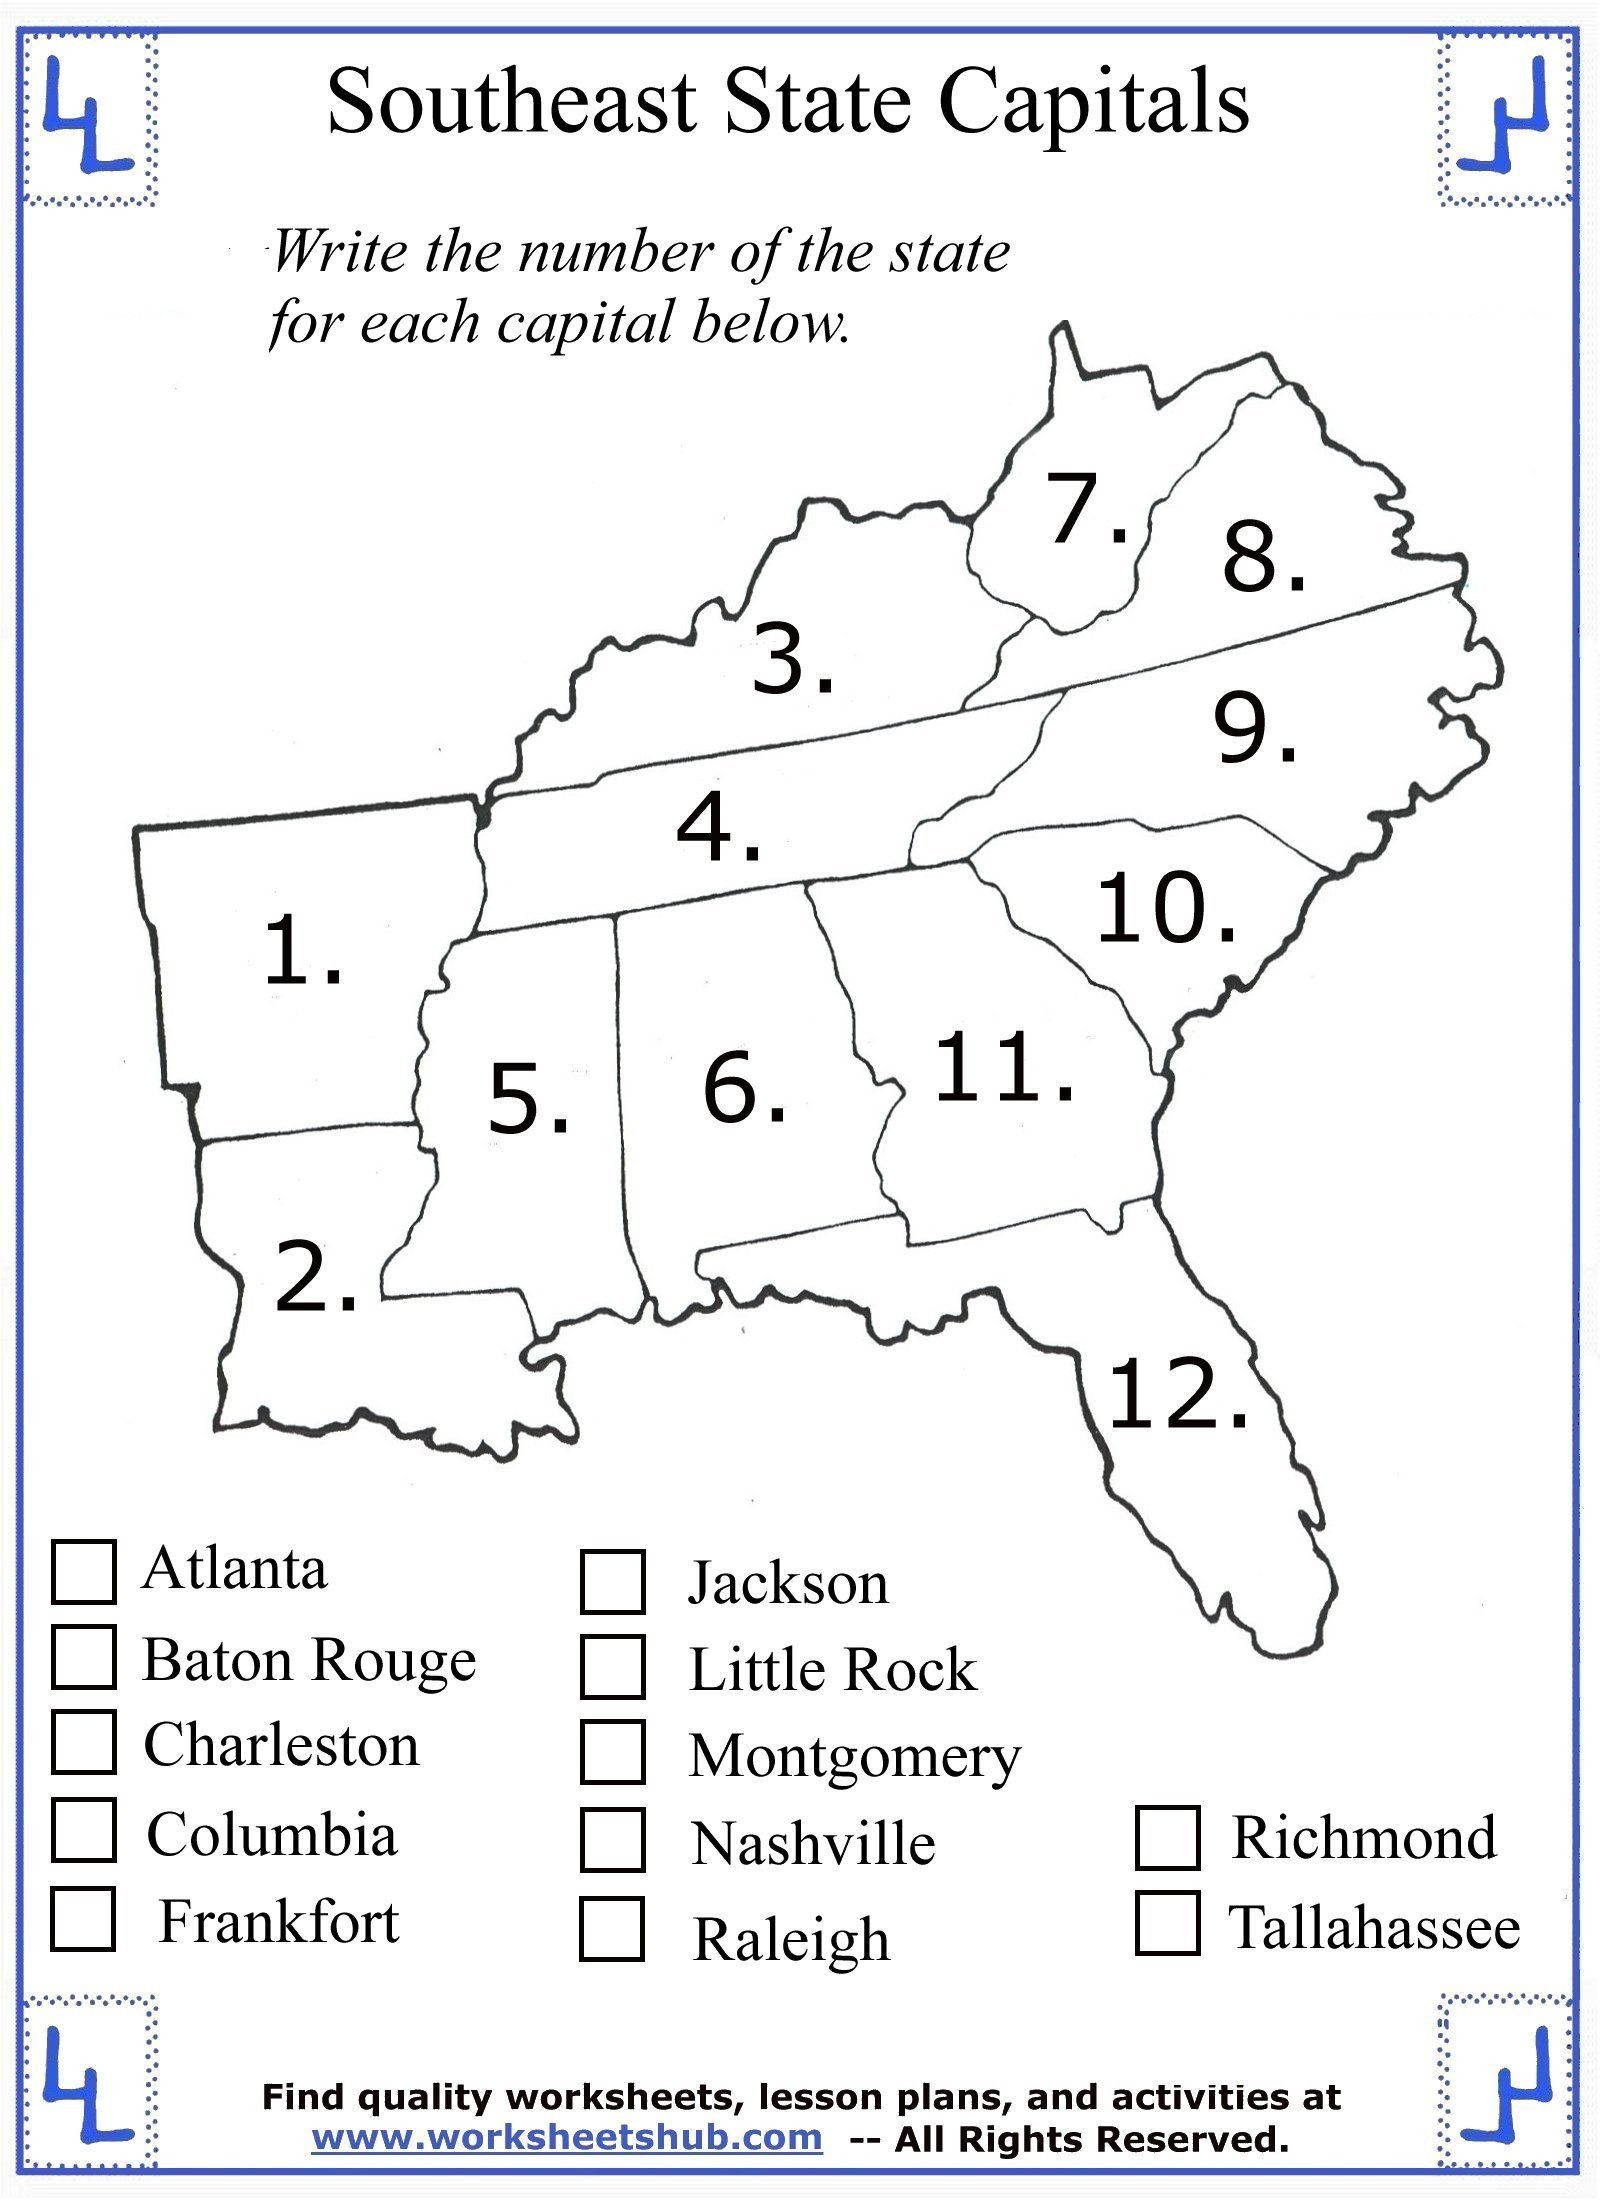 State Capitals Printable Quiz 4th Grade social Stu S southeast Region States